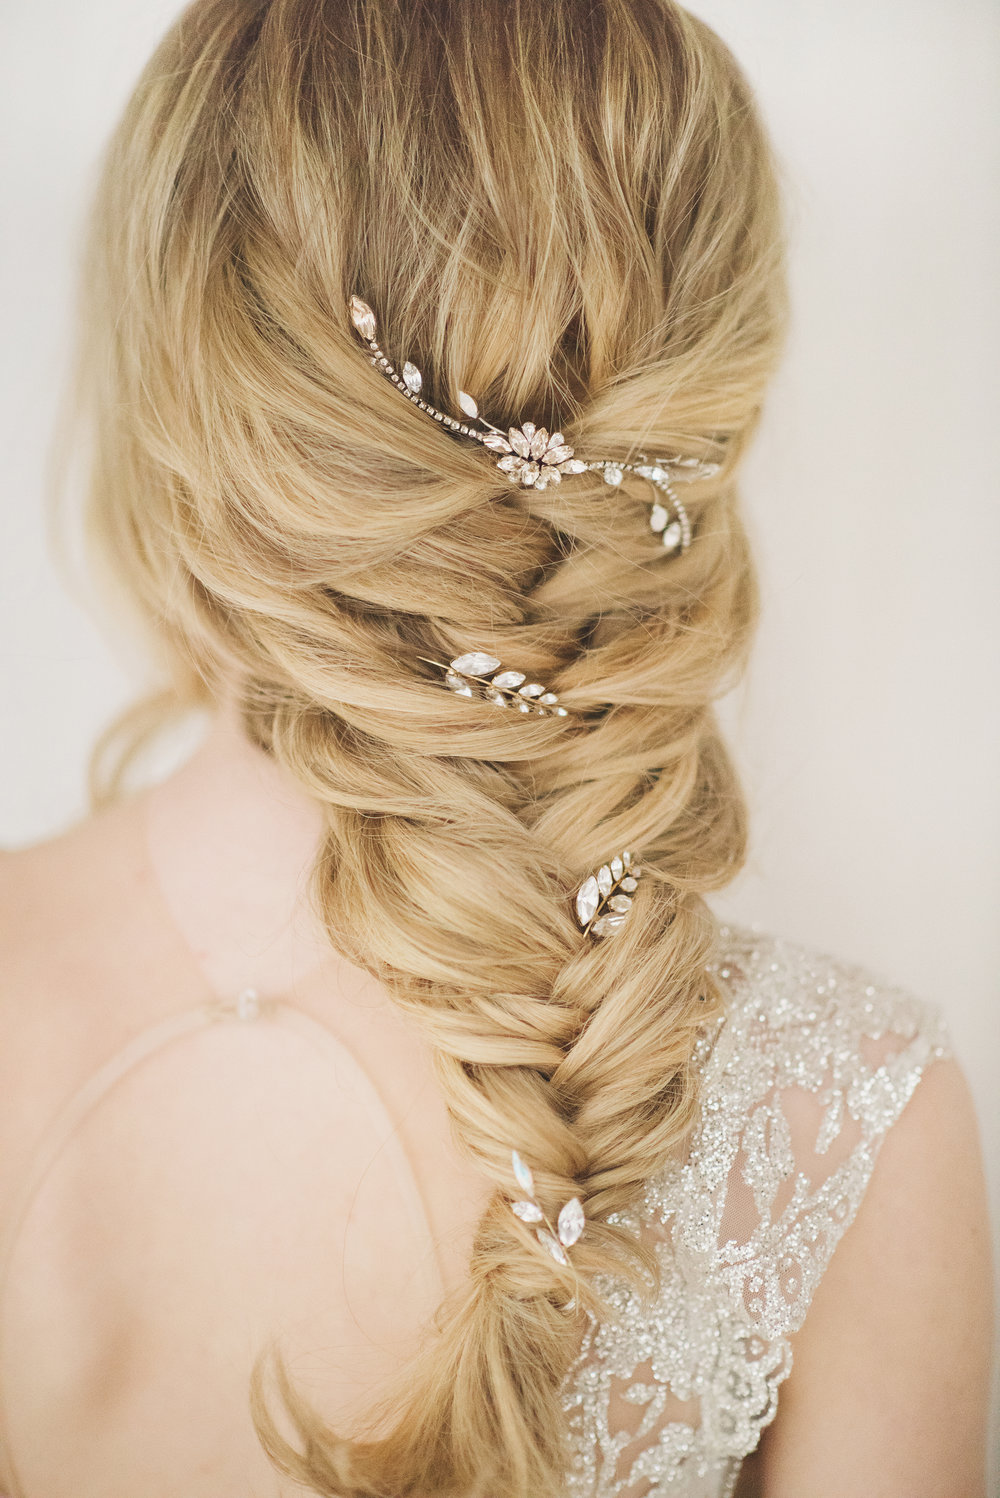 Wedding Hair Braided Style at www.elsacorsi.com